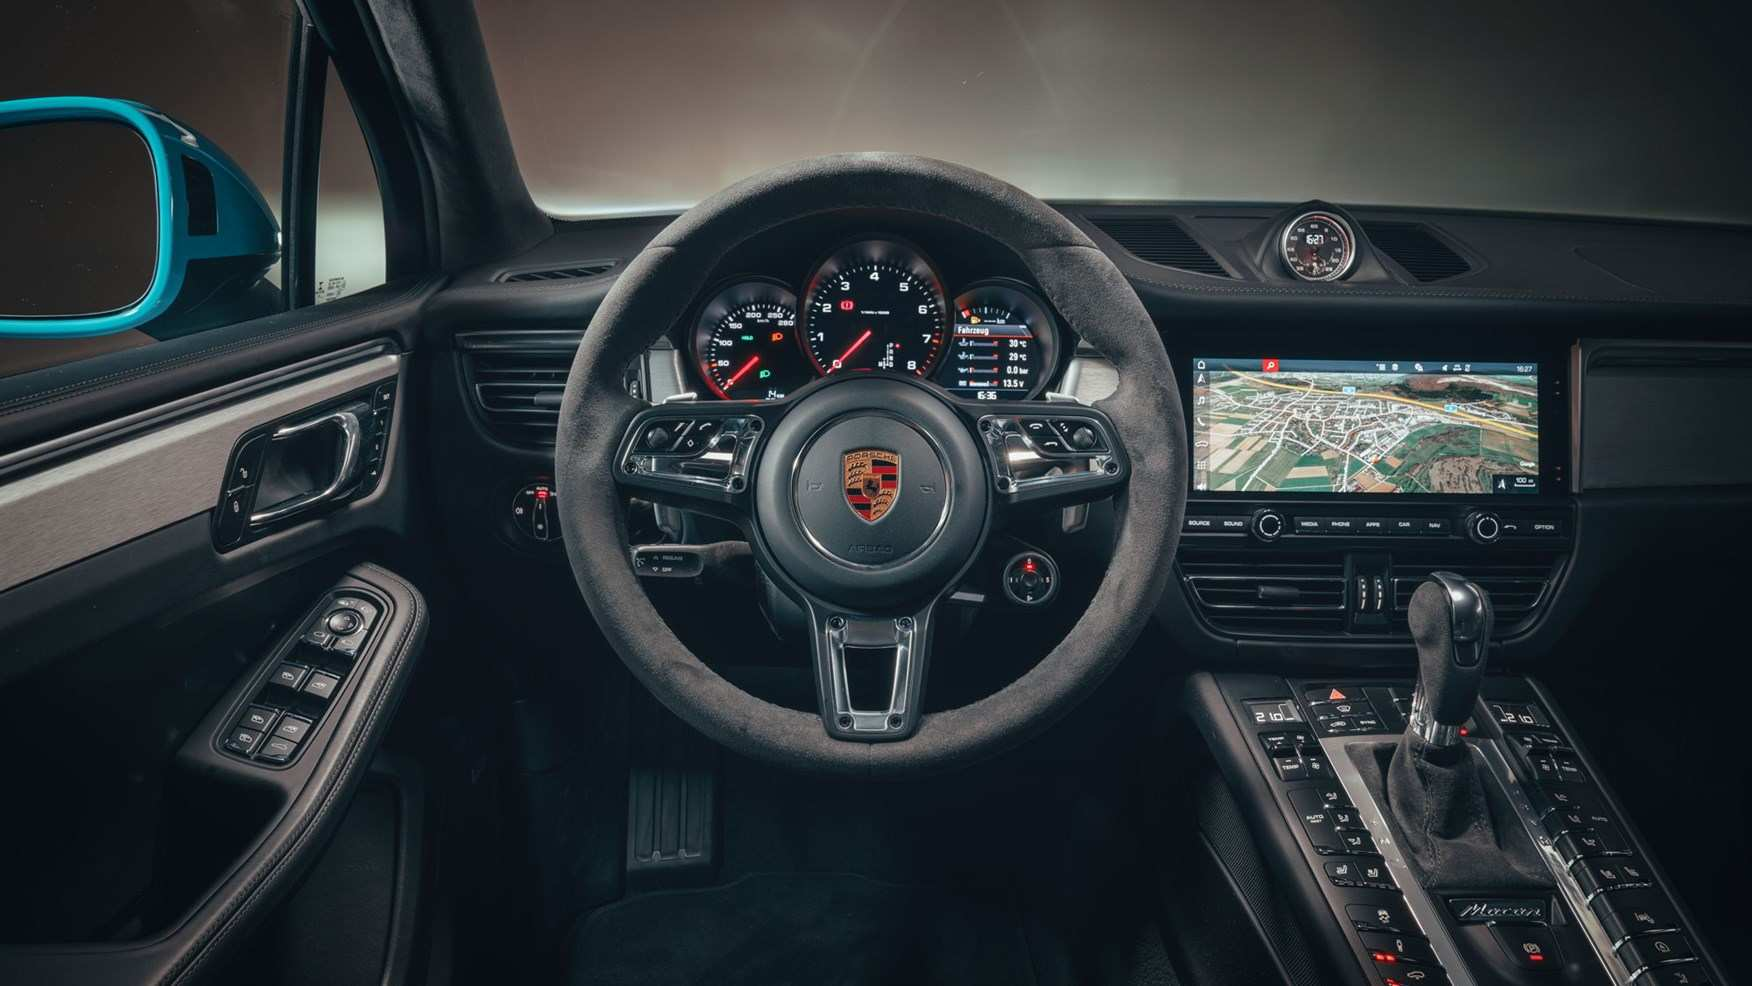 77 New 2019 Porsche Macan Gts Prices with 2019 Porsche Macan Gts